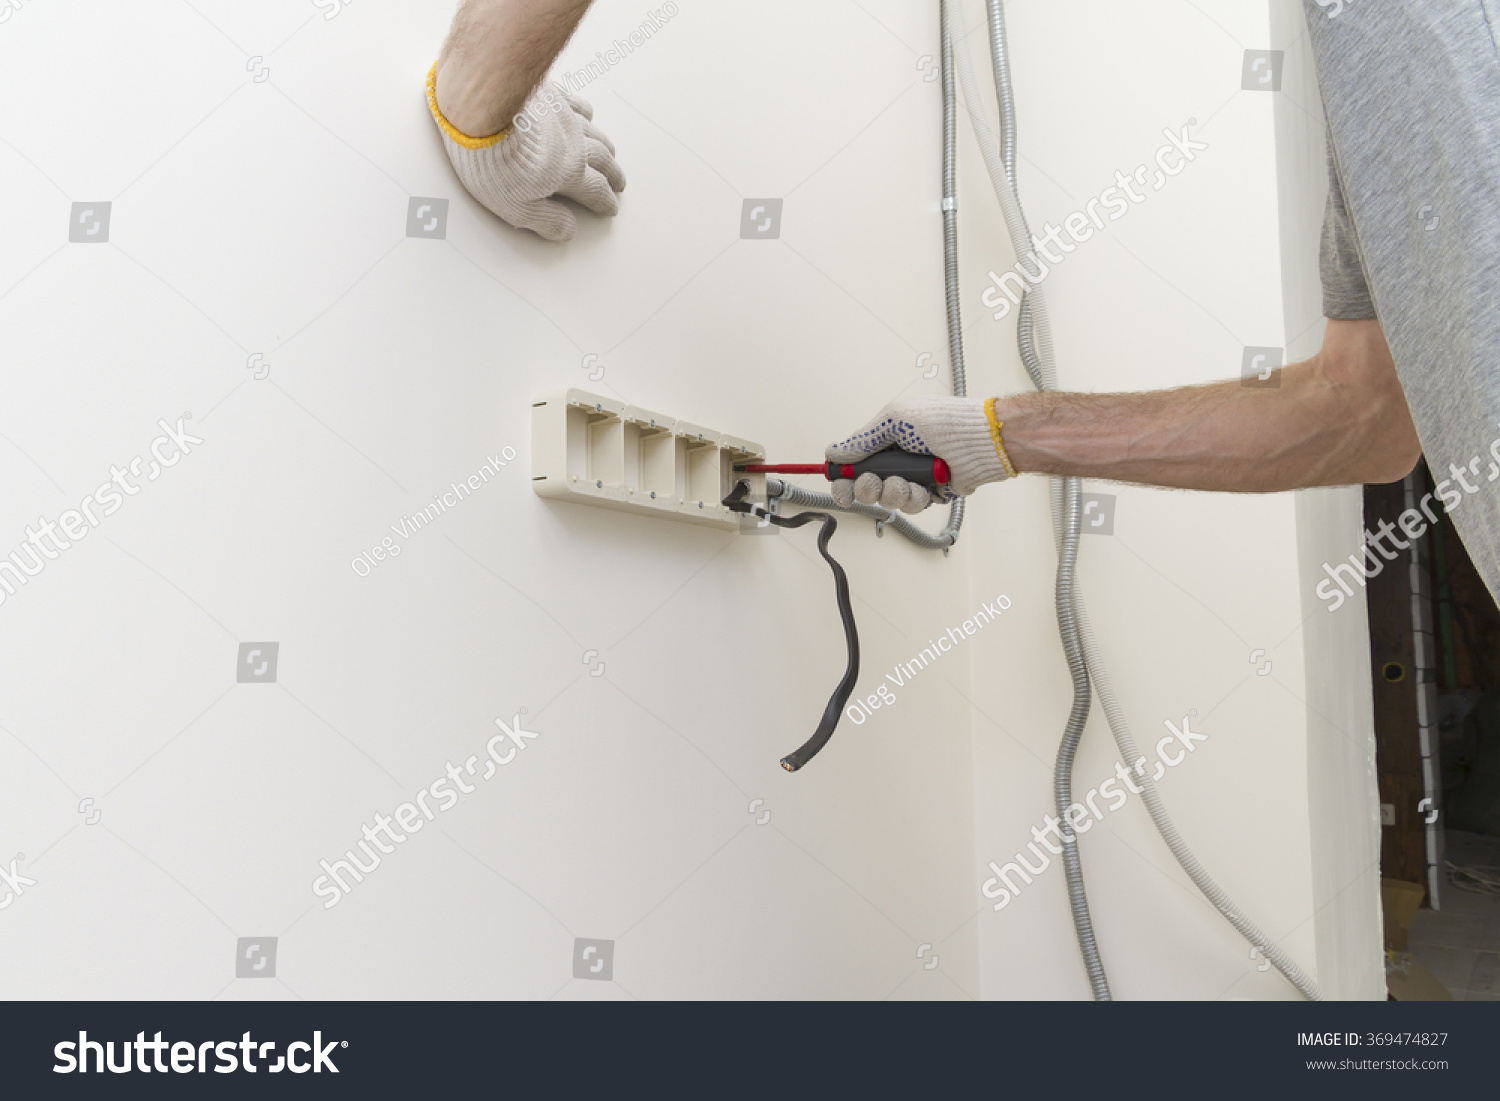 Start Installation Overhead Electrical Outlets Hands Stock Photo ...